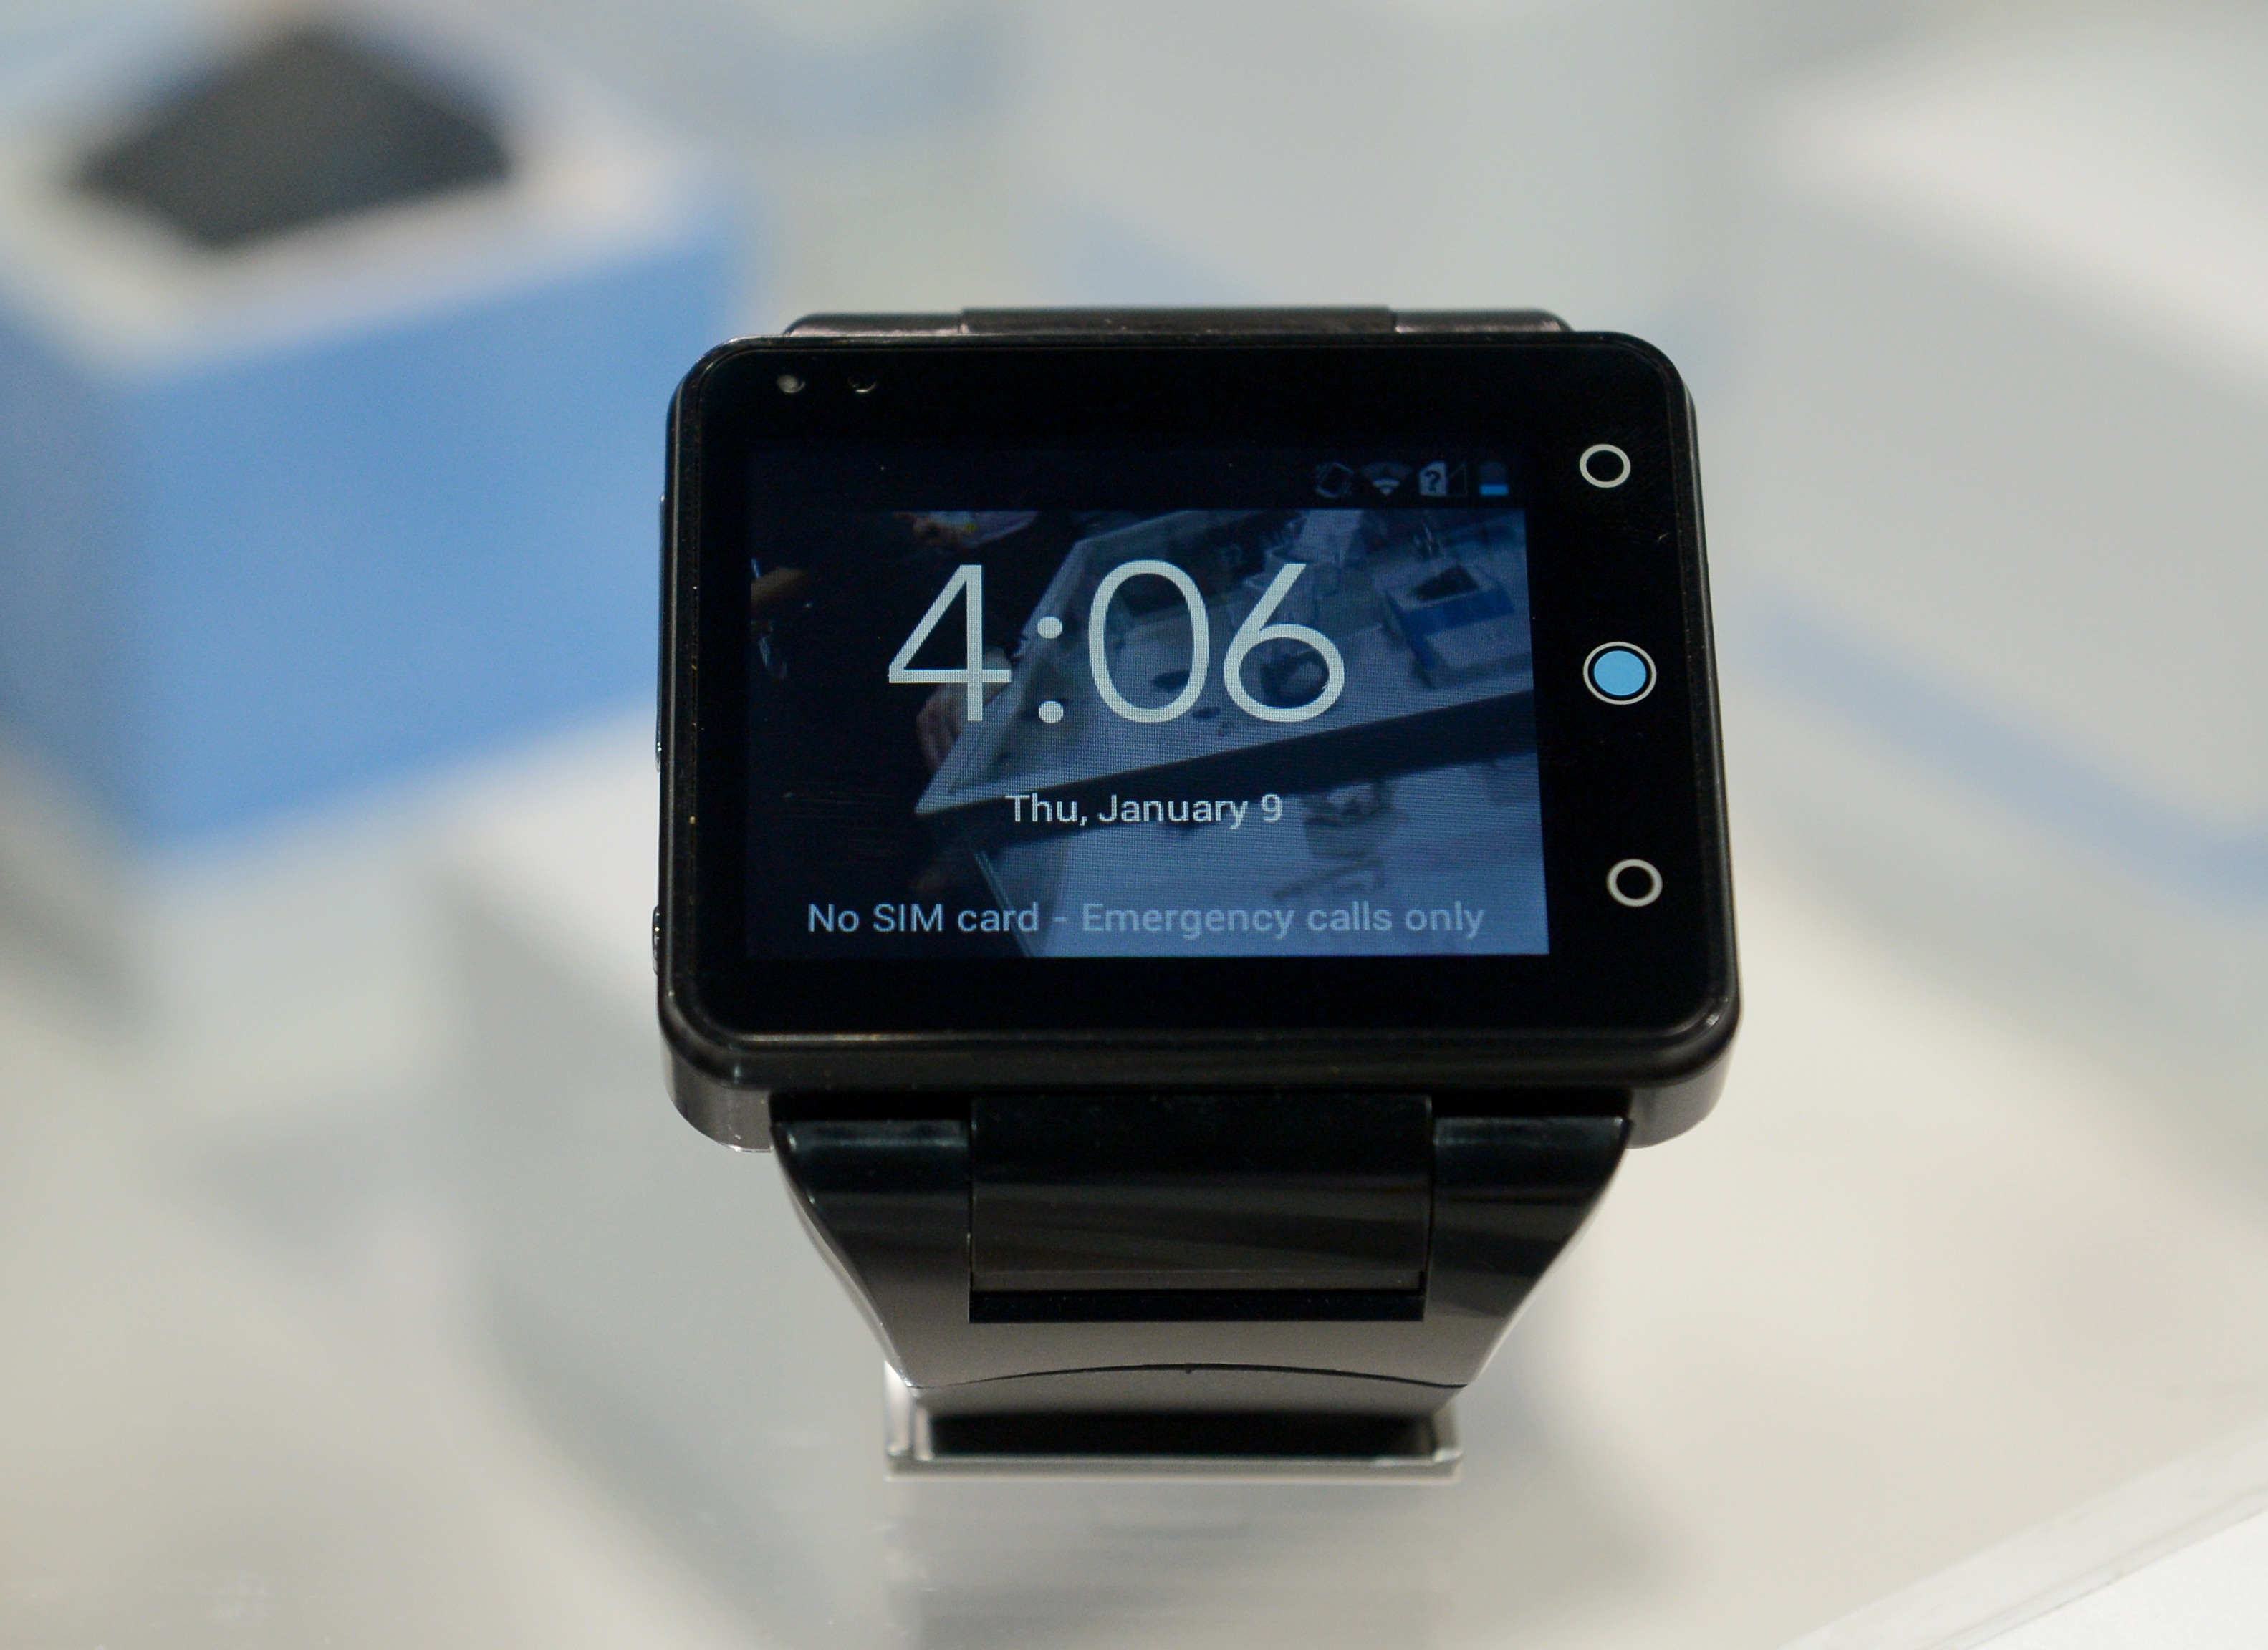 A Neptune Pine smartwatch at the Consumer Electronics Show (CES) in Las Vegas on Jan 9, 2014.